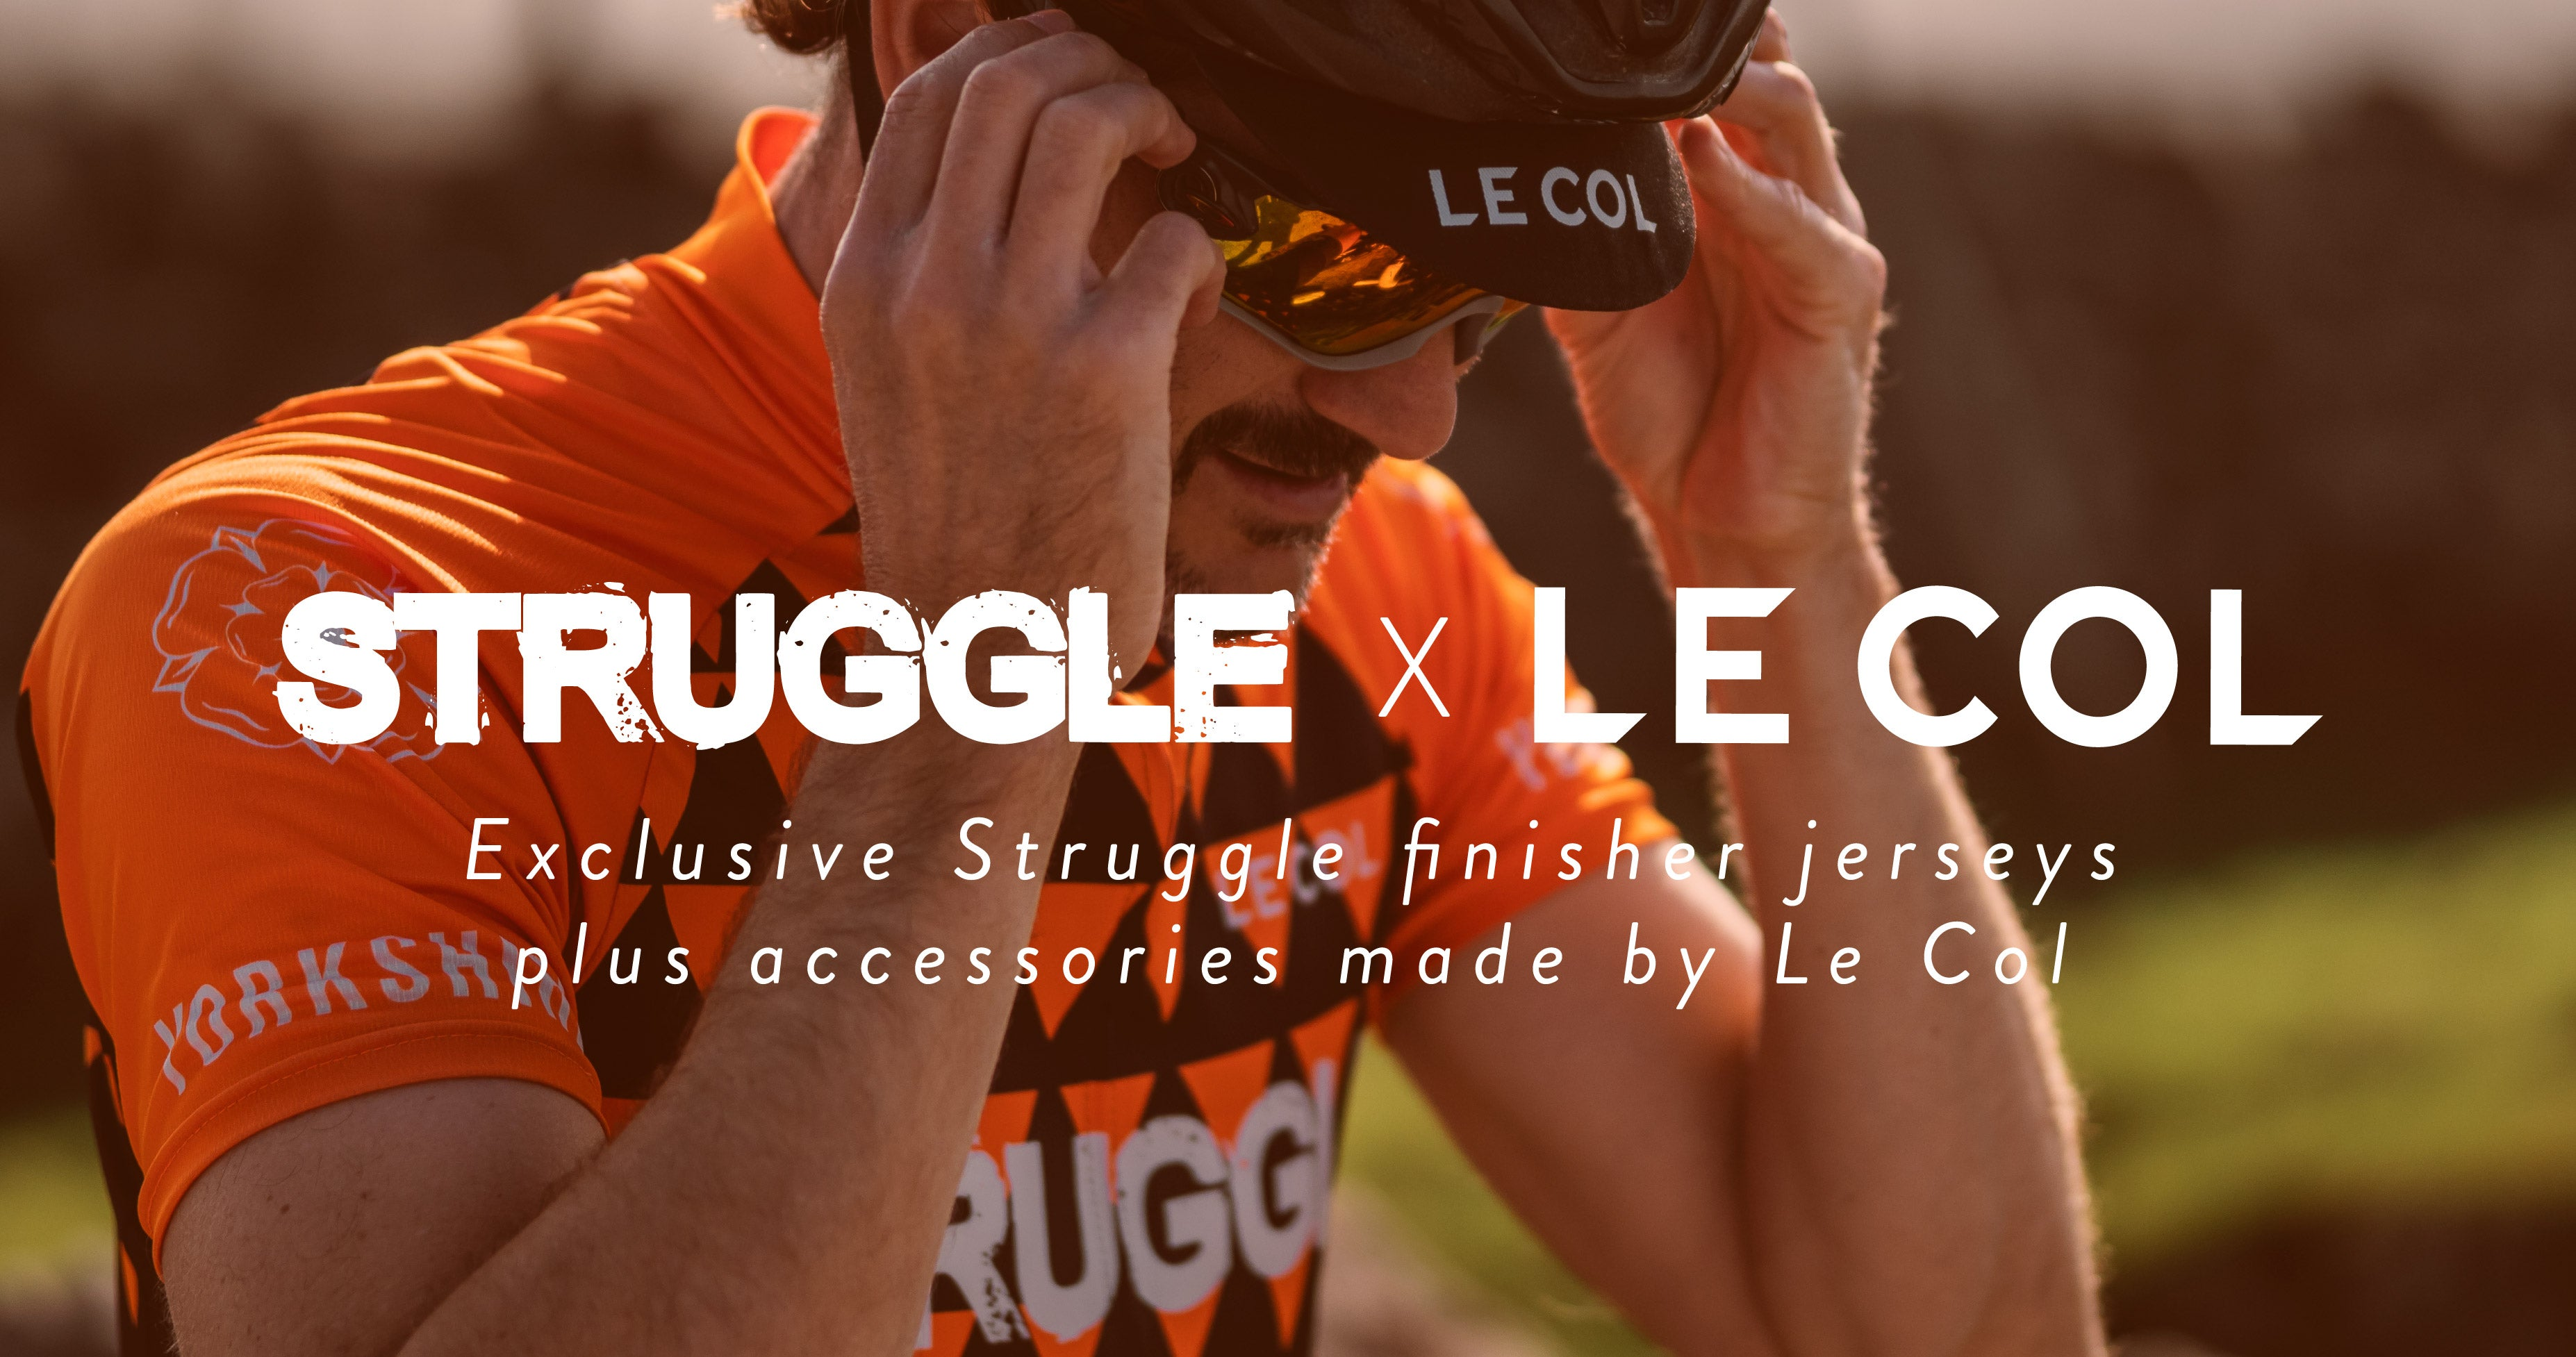 Struggle Kit by Le Col